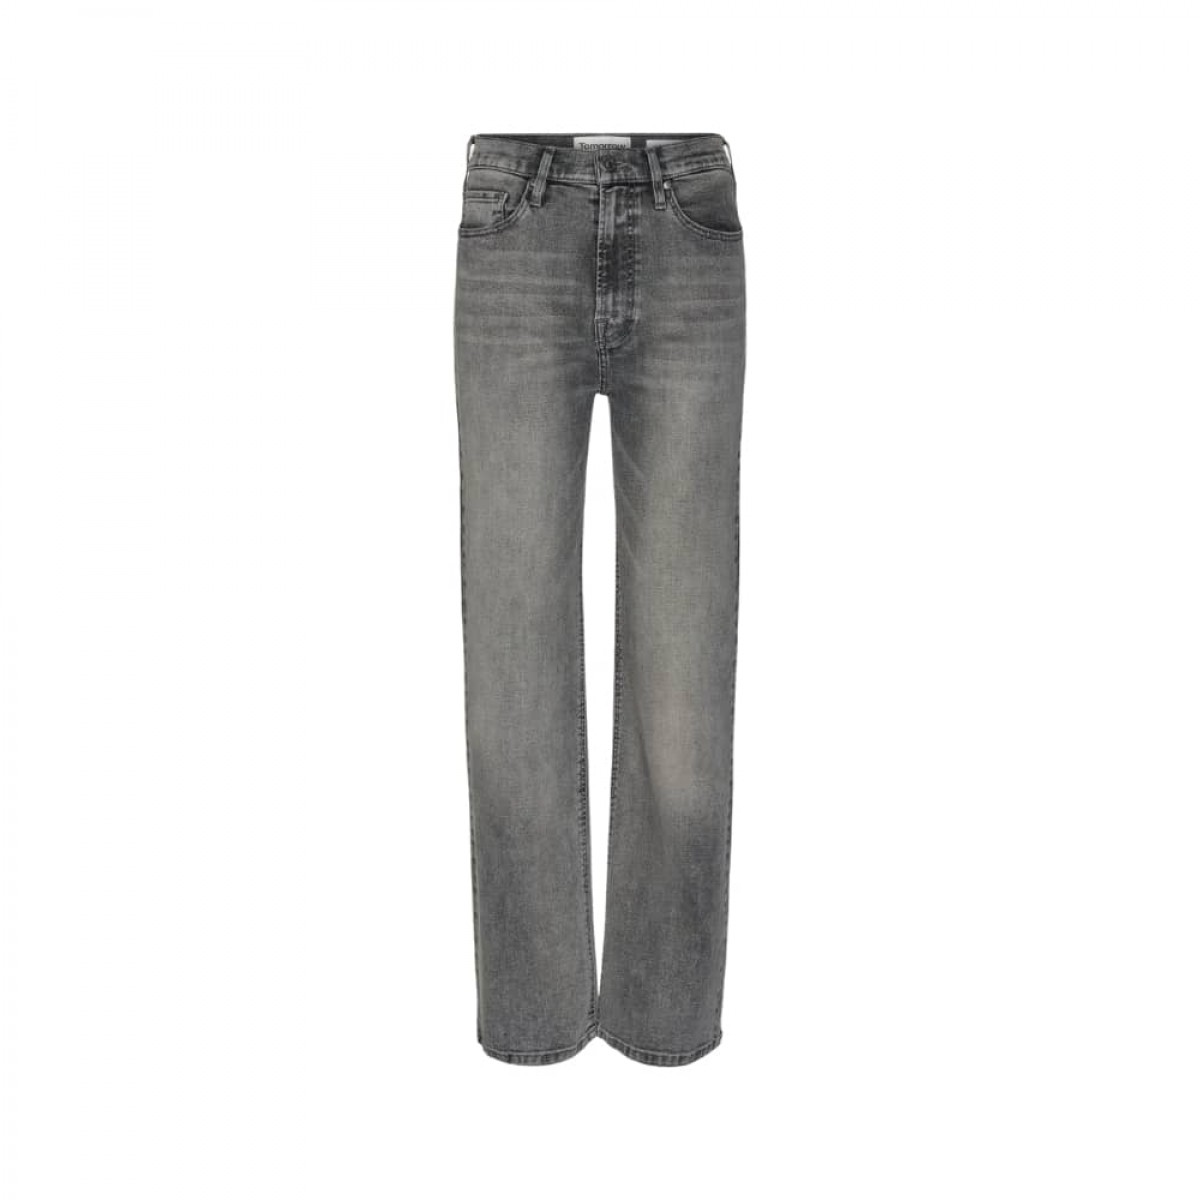 bowie hw cropped jeans - grey - front